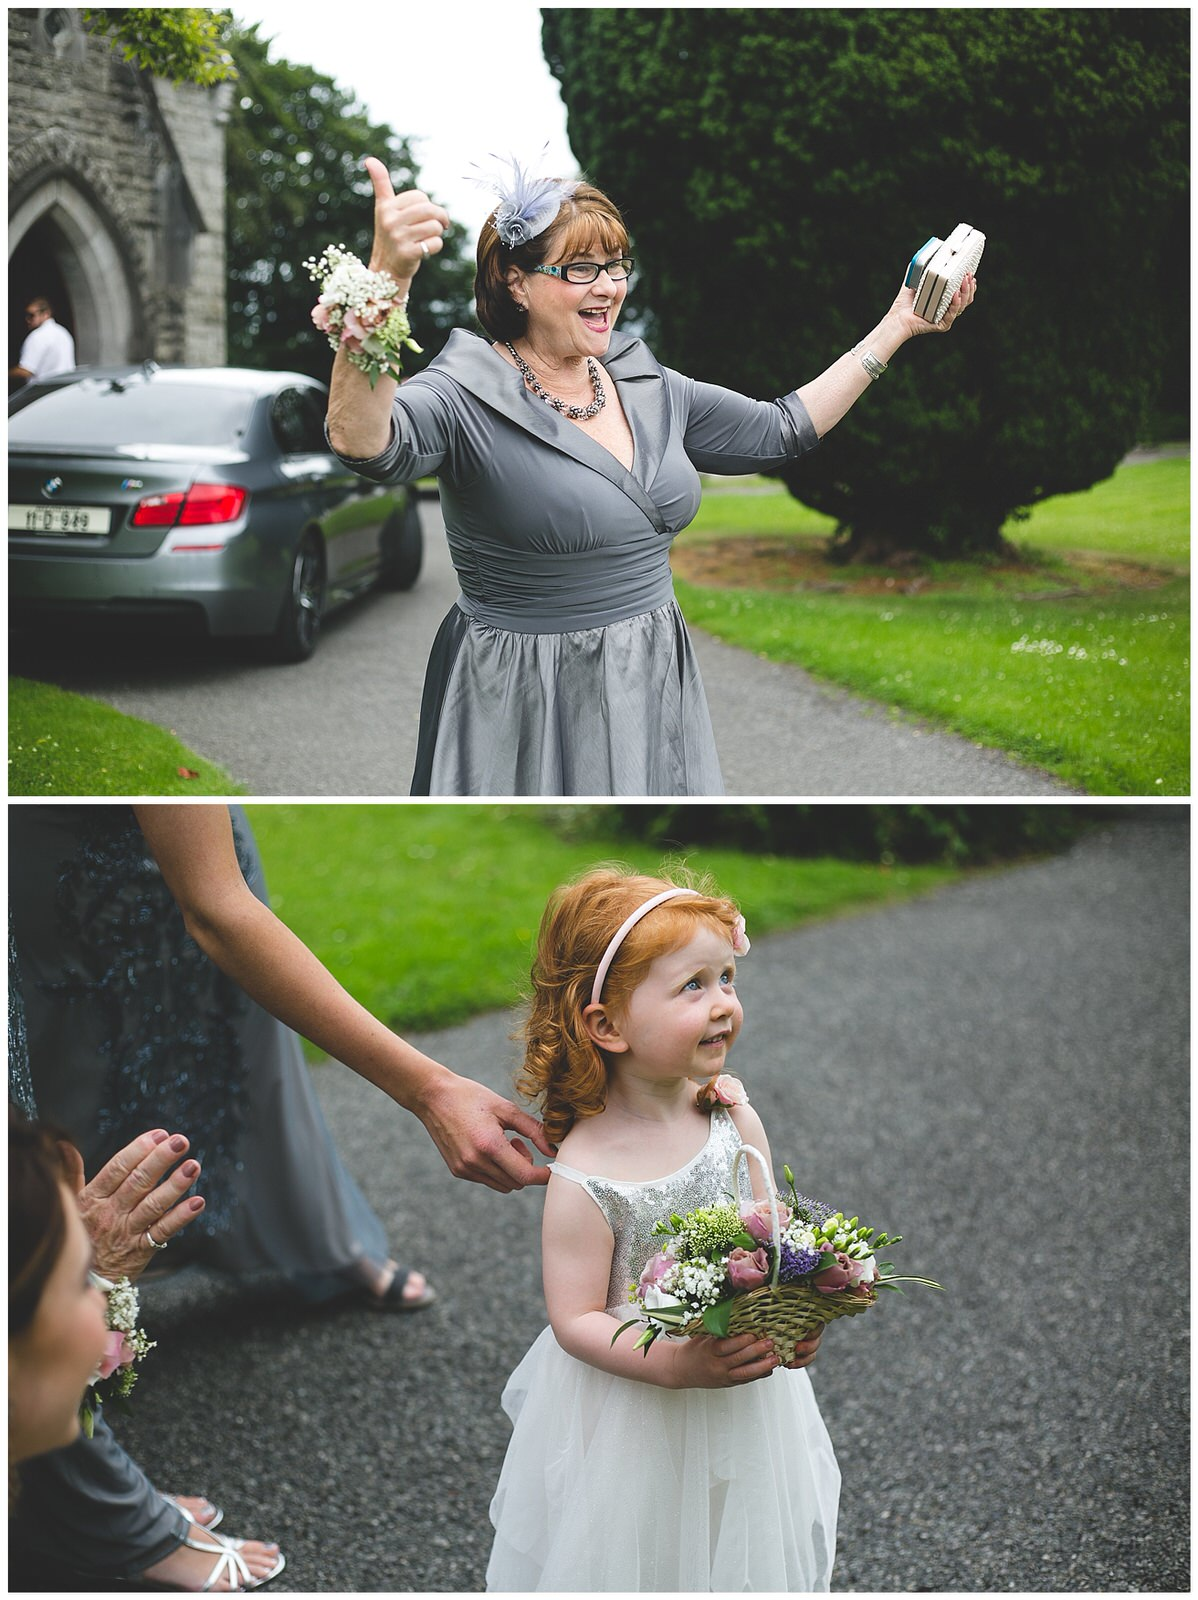 Mother of the Bride wearing a stylish wrap dress and corsage